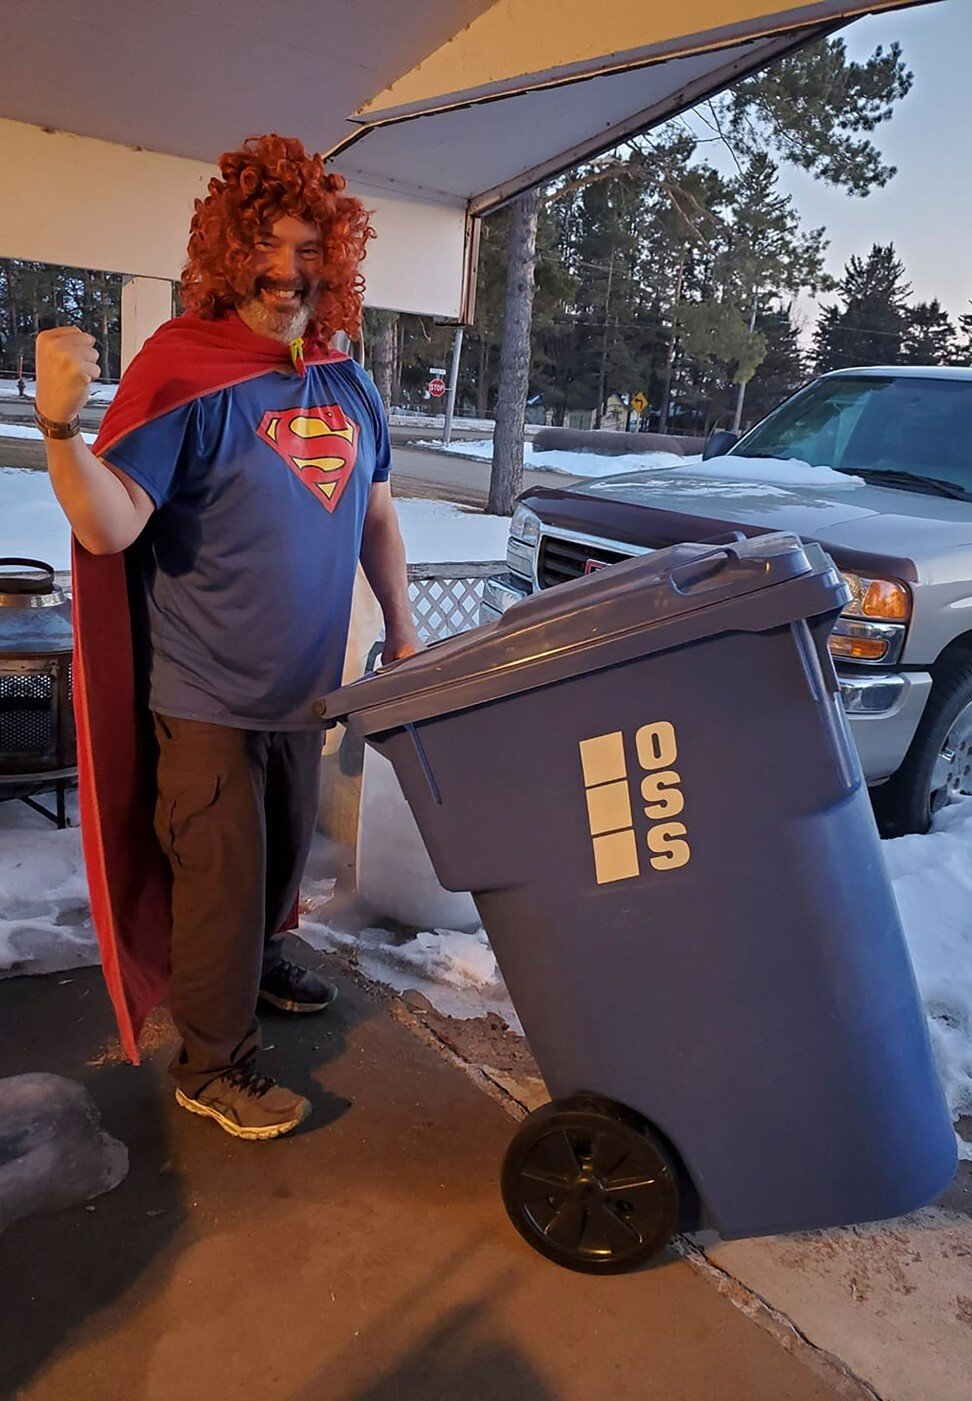 The people in lockdown who dress up to take the bins out – it's a trashy fashion trend